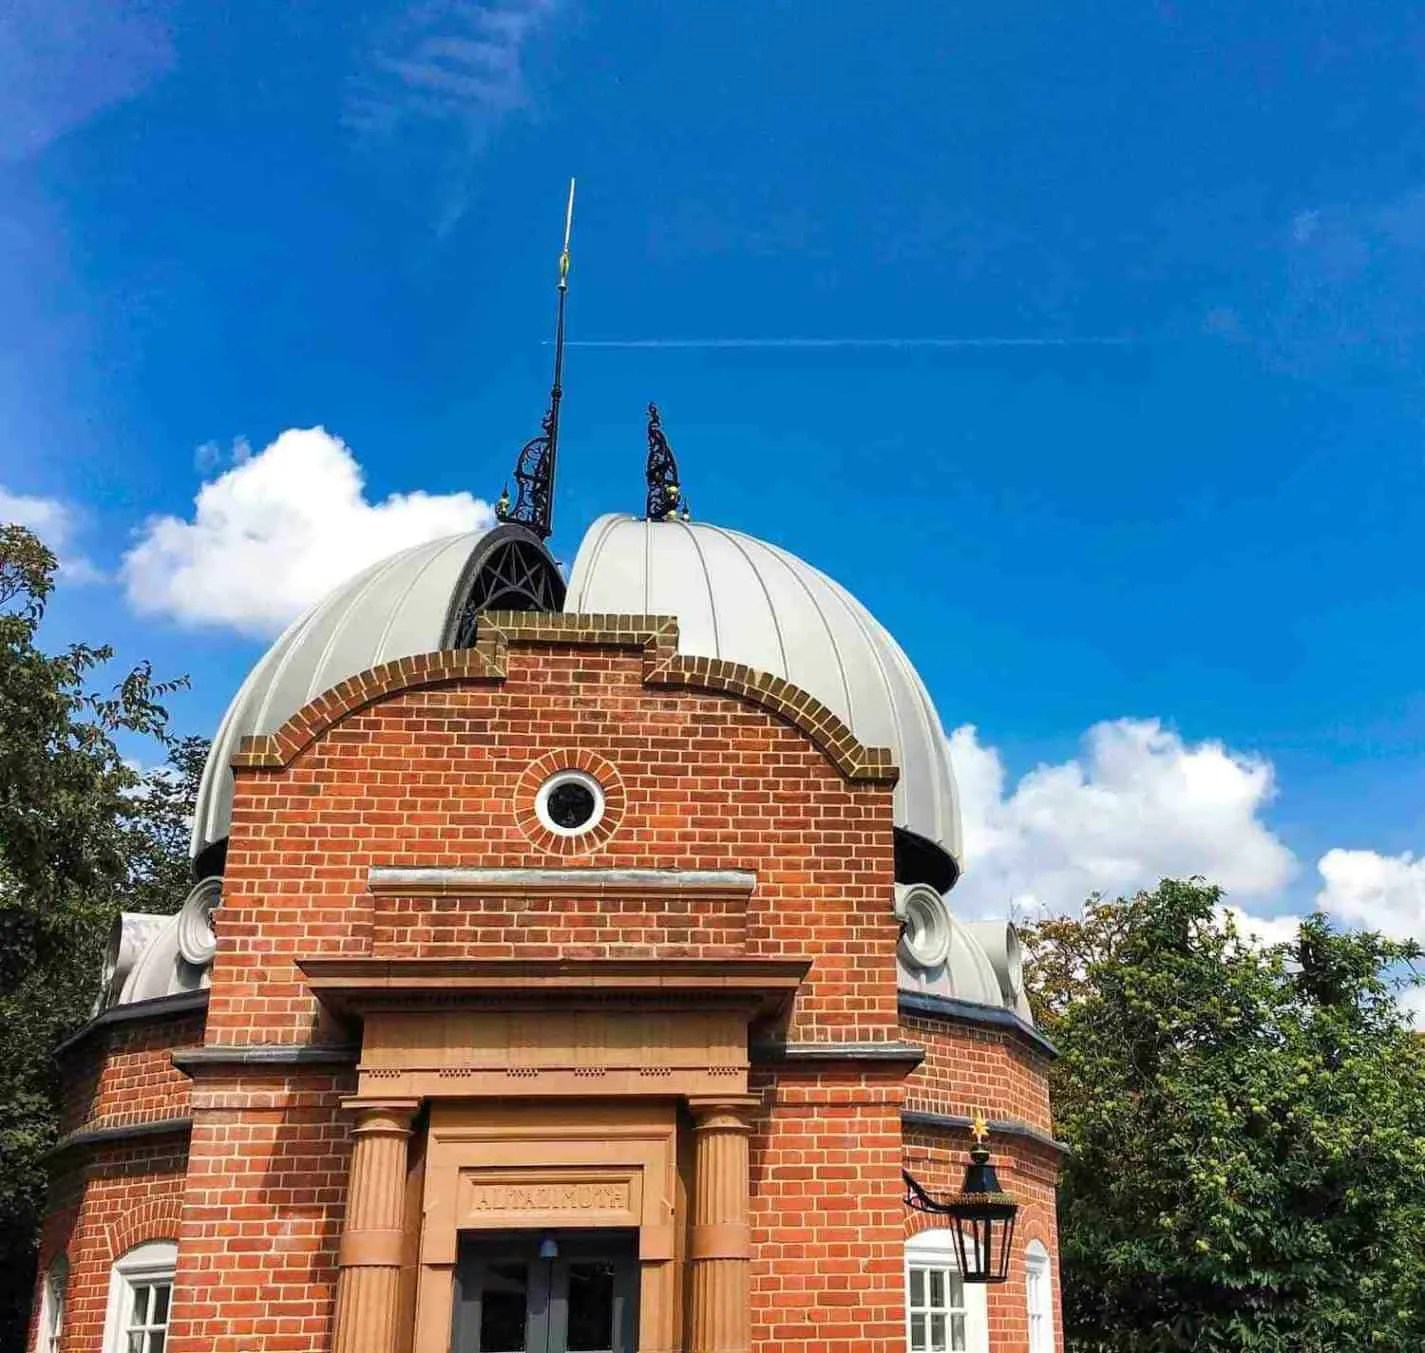 Royal Observatory Greenwich 2